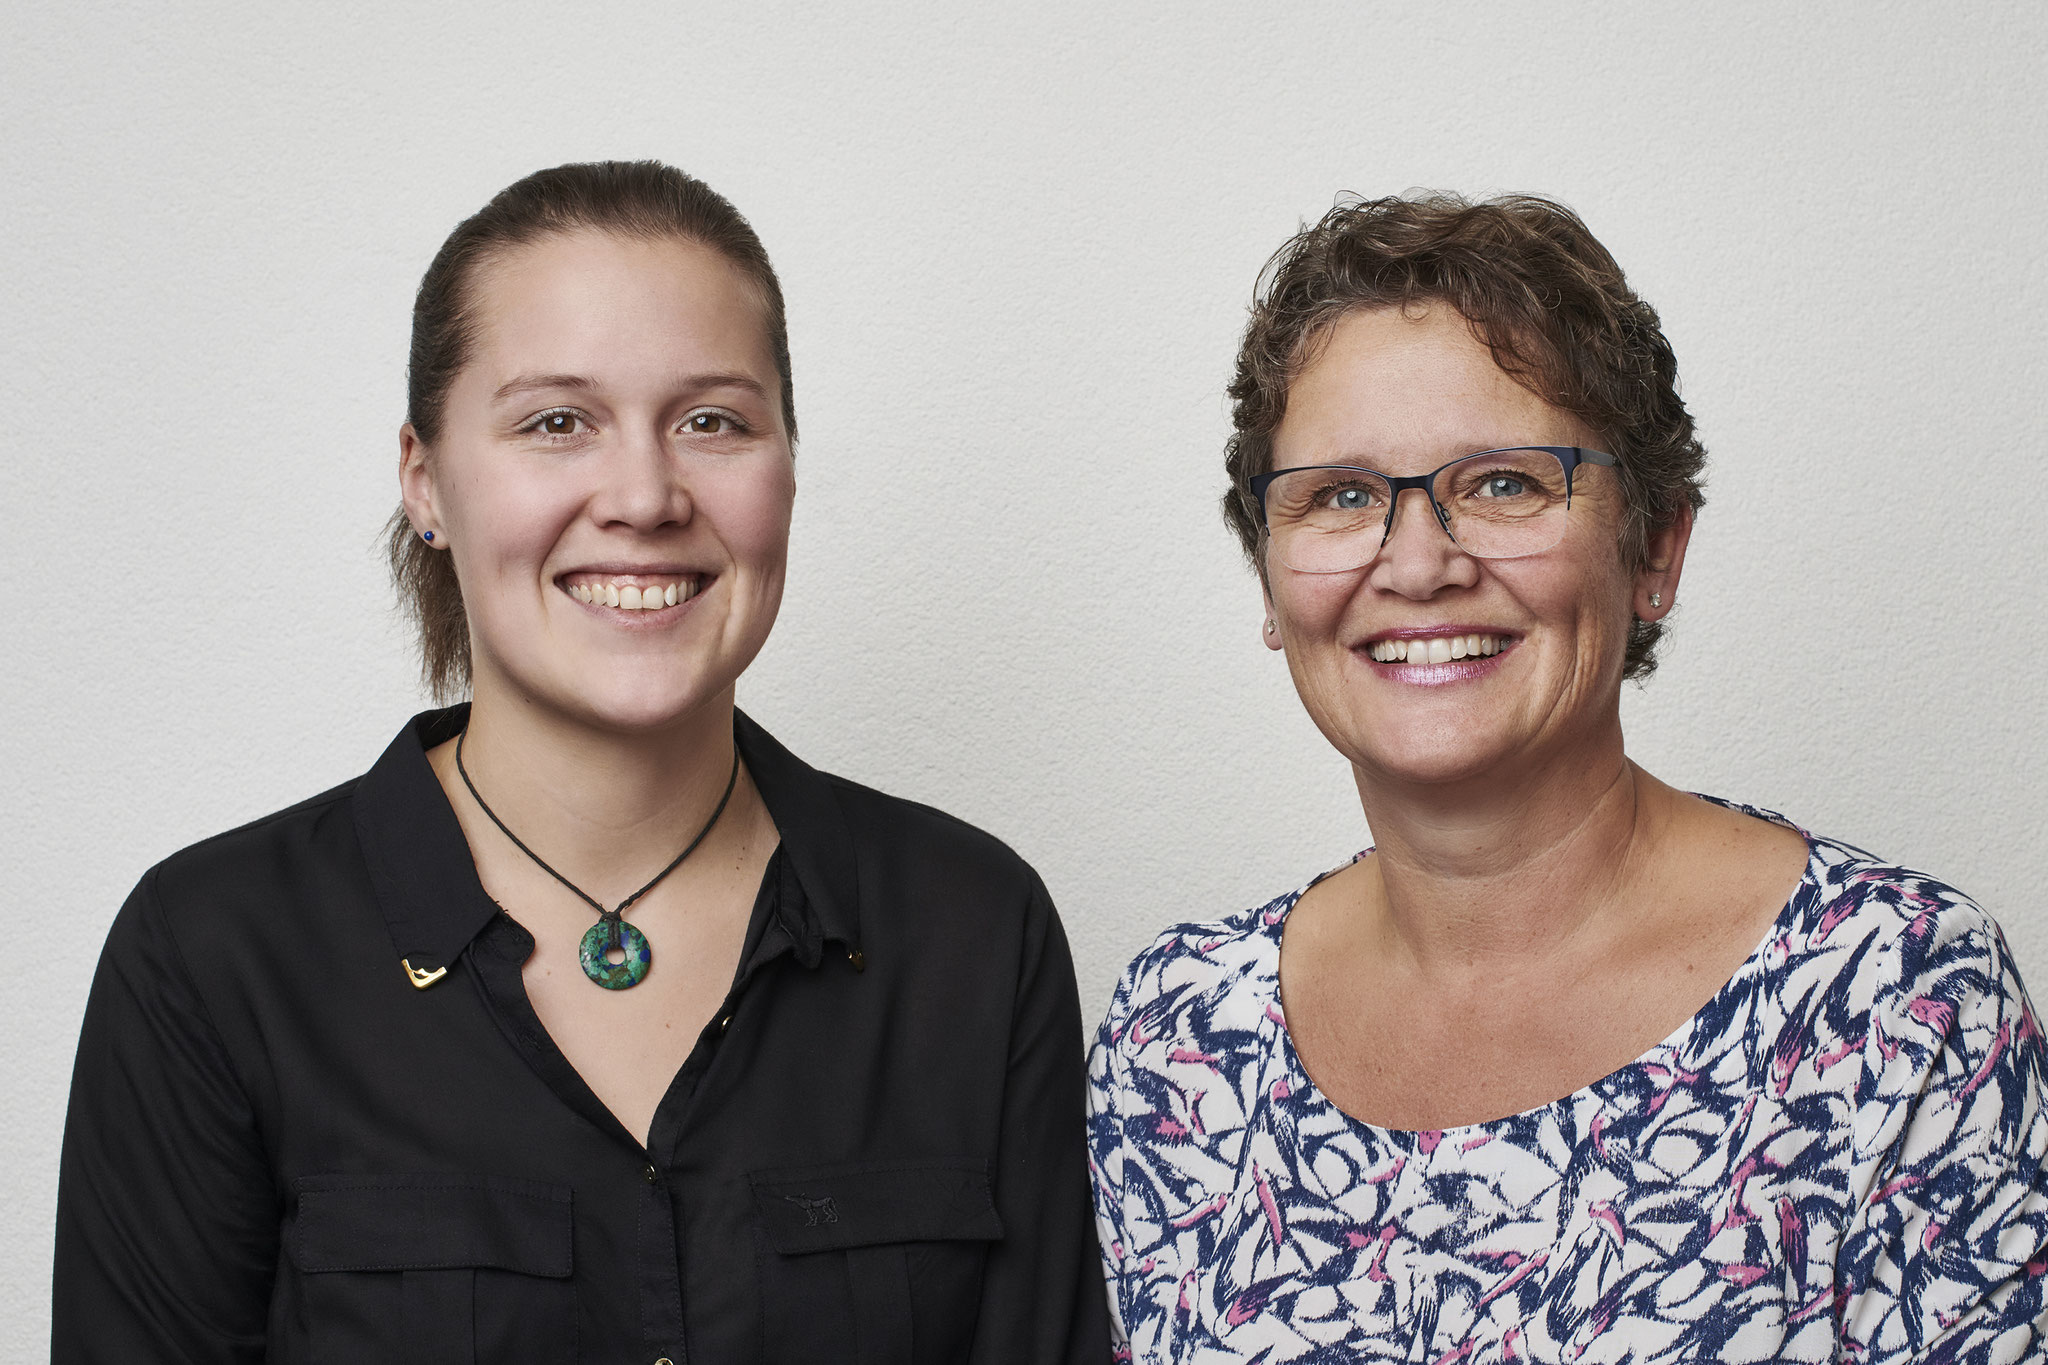 Livia Bee Naturheilpraktikerin (links), Evelyne Bee Kinesiologin (rechts)